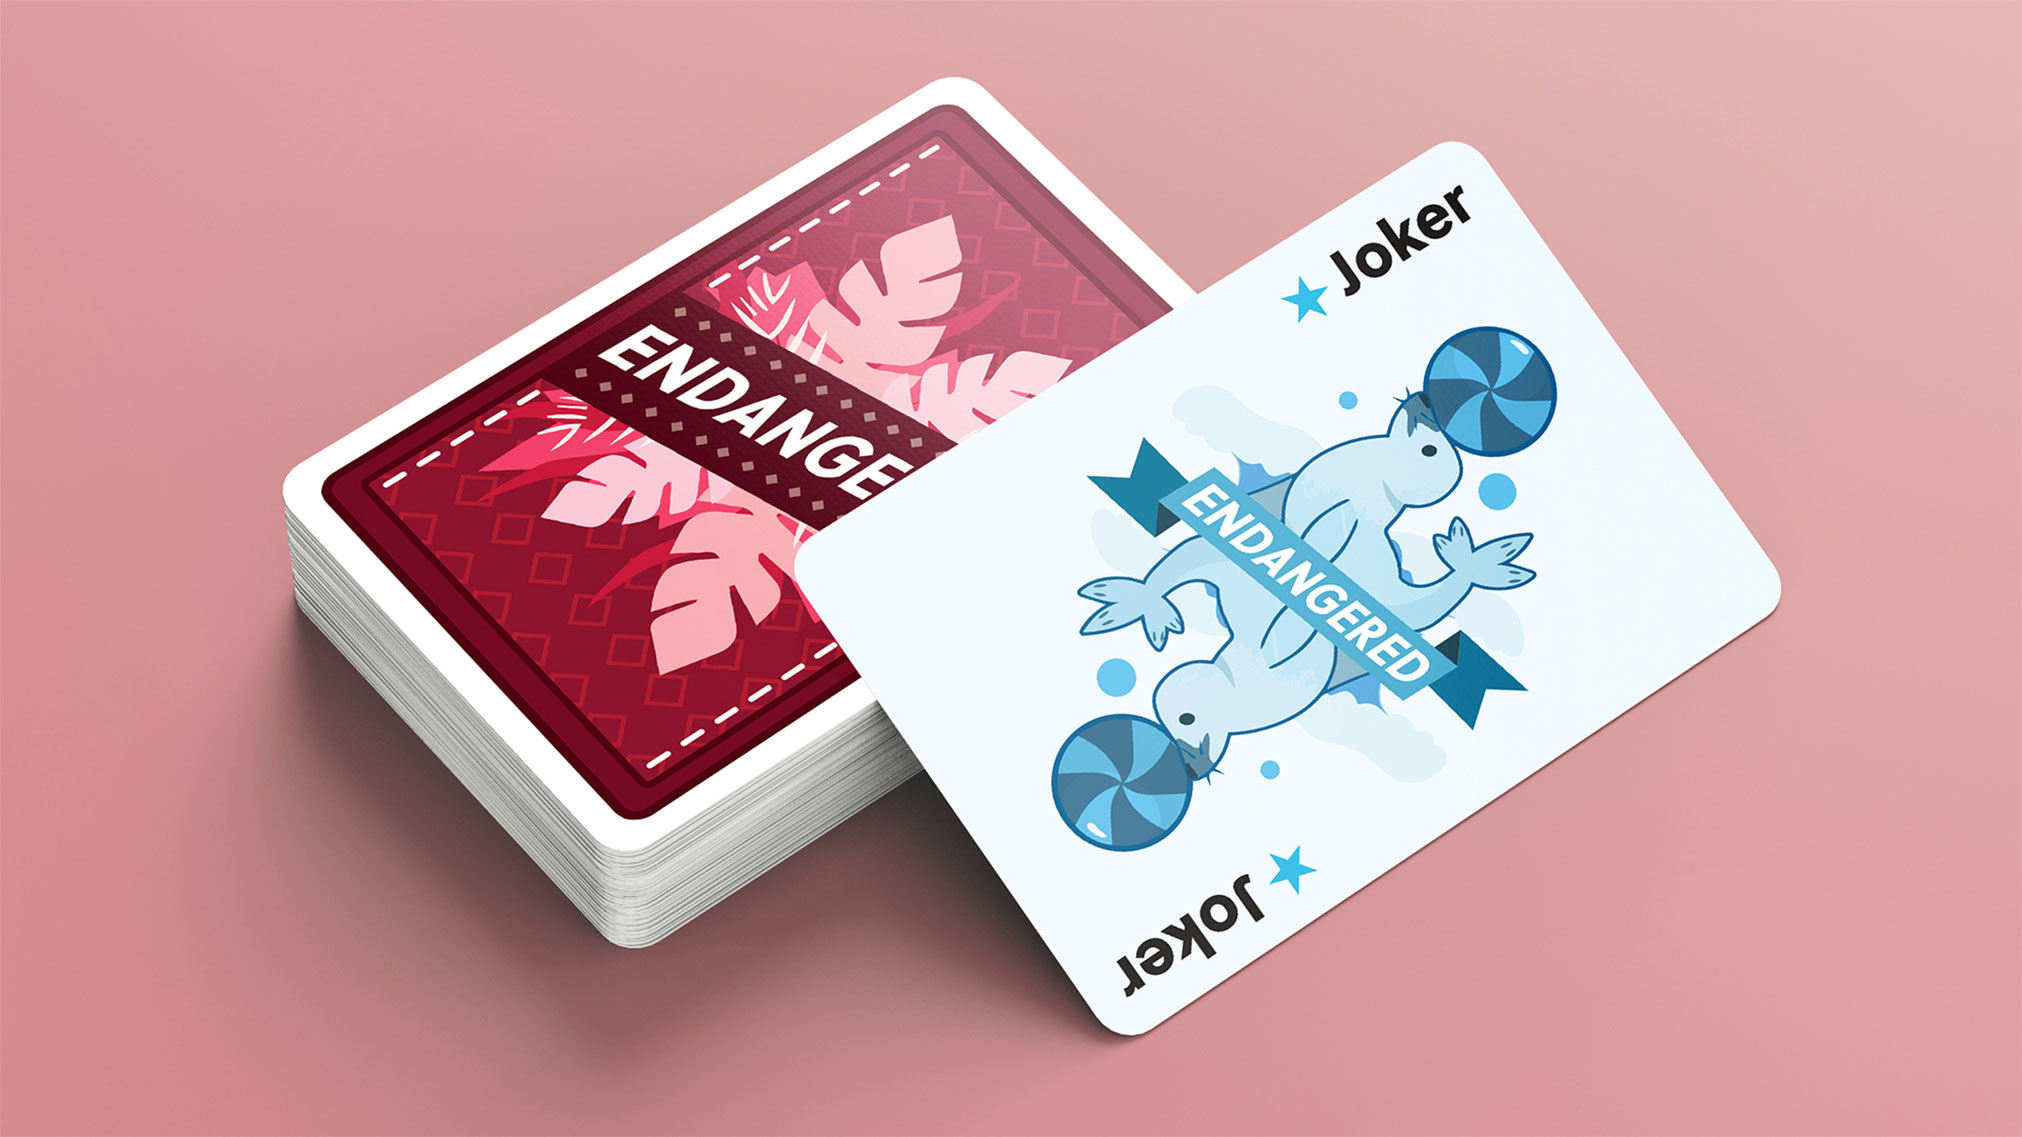 This playing card set has over 13 unique animal illustrations, die-lines for the package and Ar card functionality. The goal of this was to allow kids to interact with the animals.